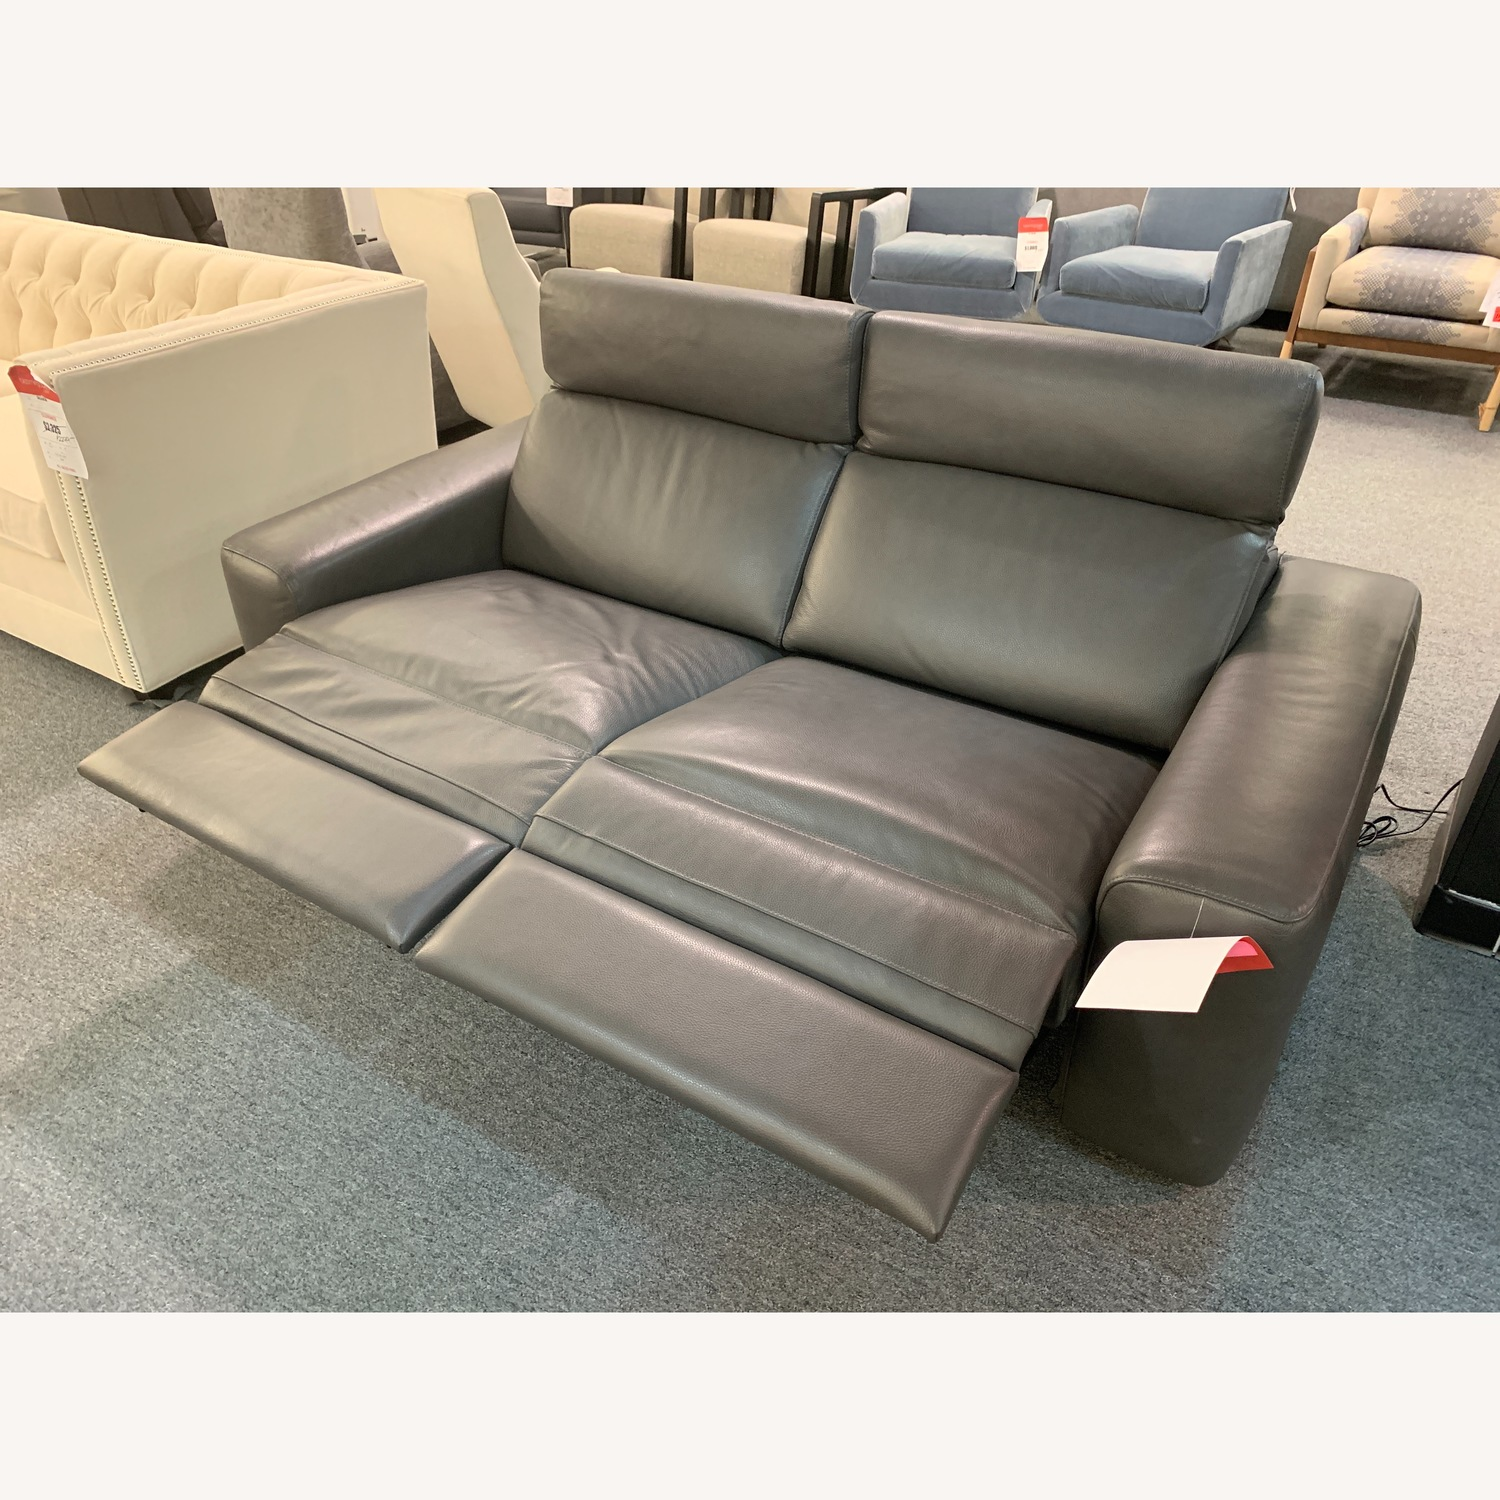 Chateau D'Ax Toby Reclining Sofa - image-1